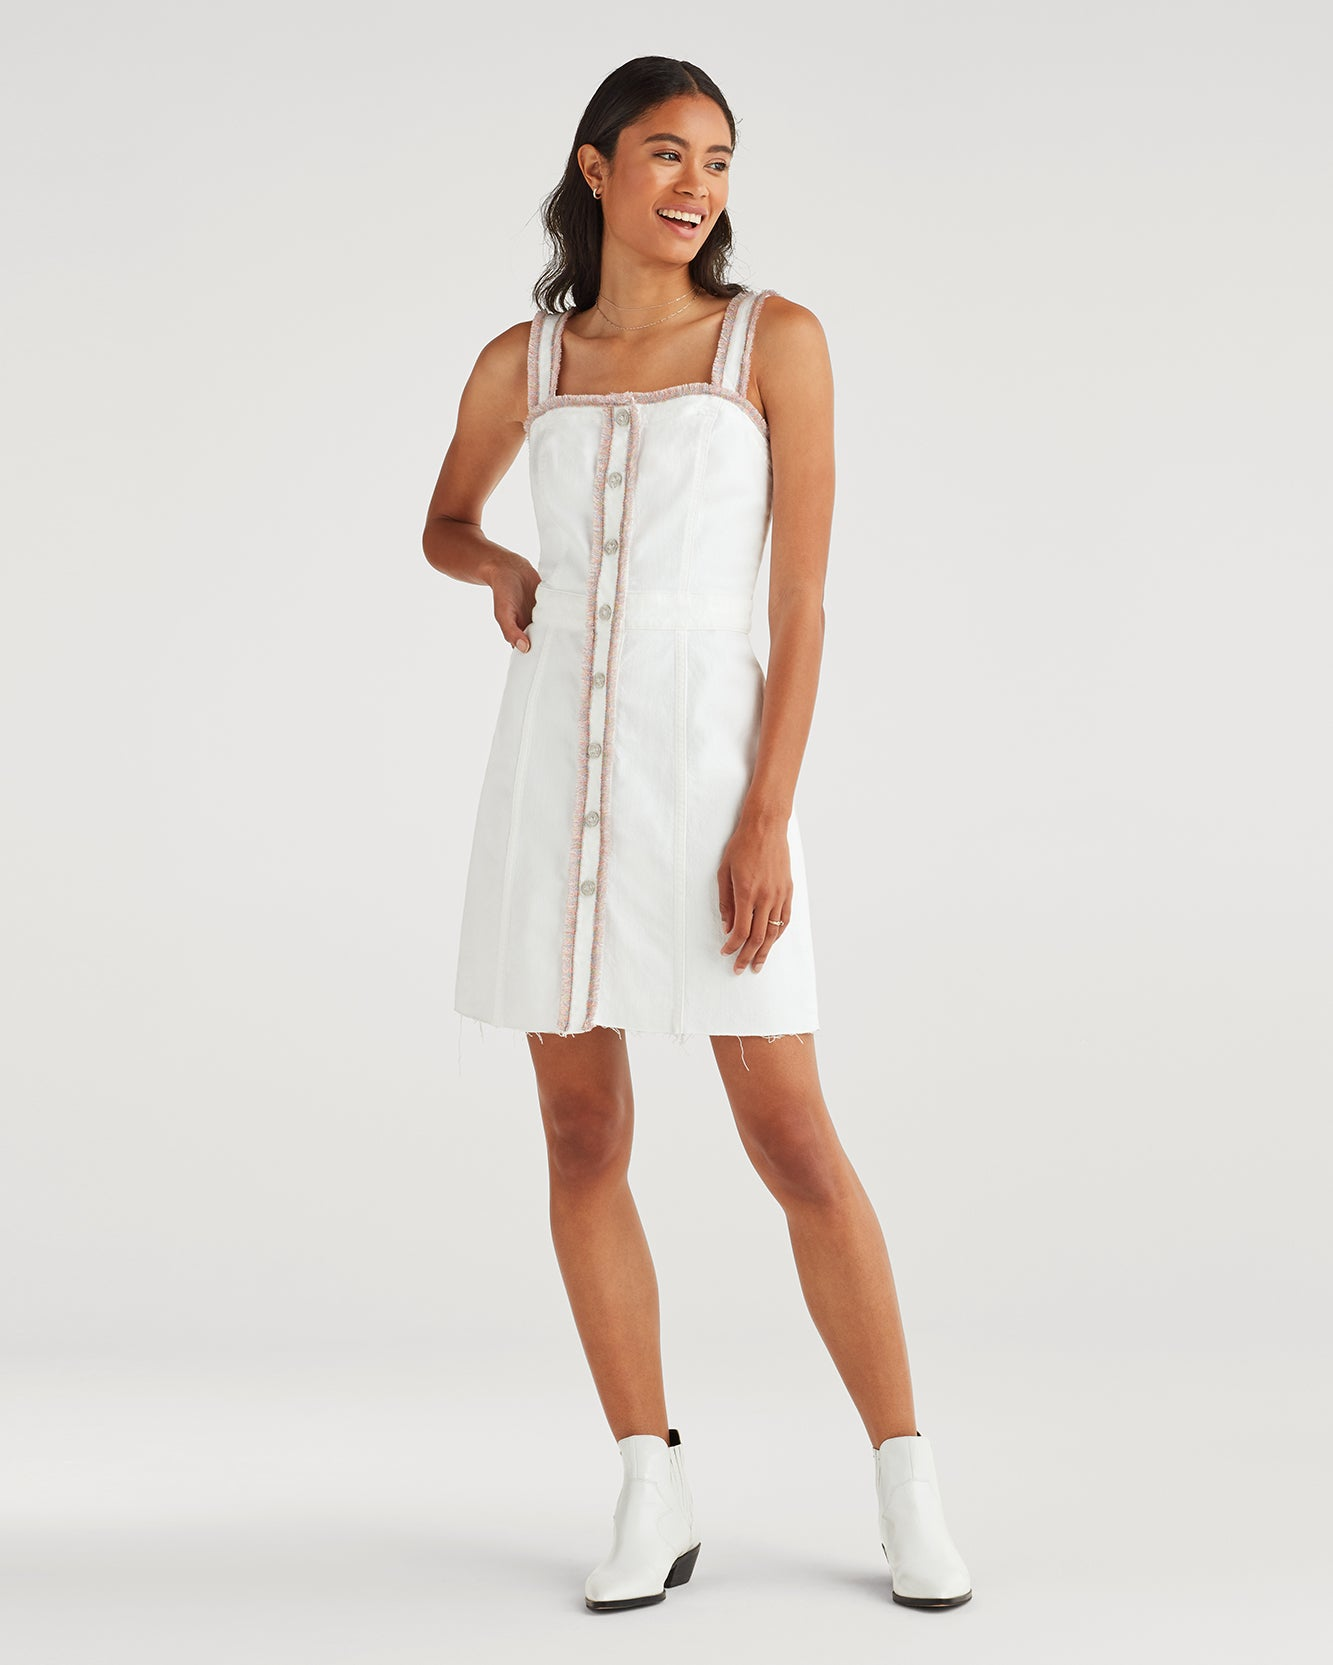 Image of Button Front Dress with Rainbow Fringe in Runway White Fashion